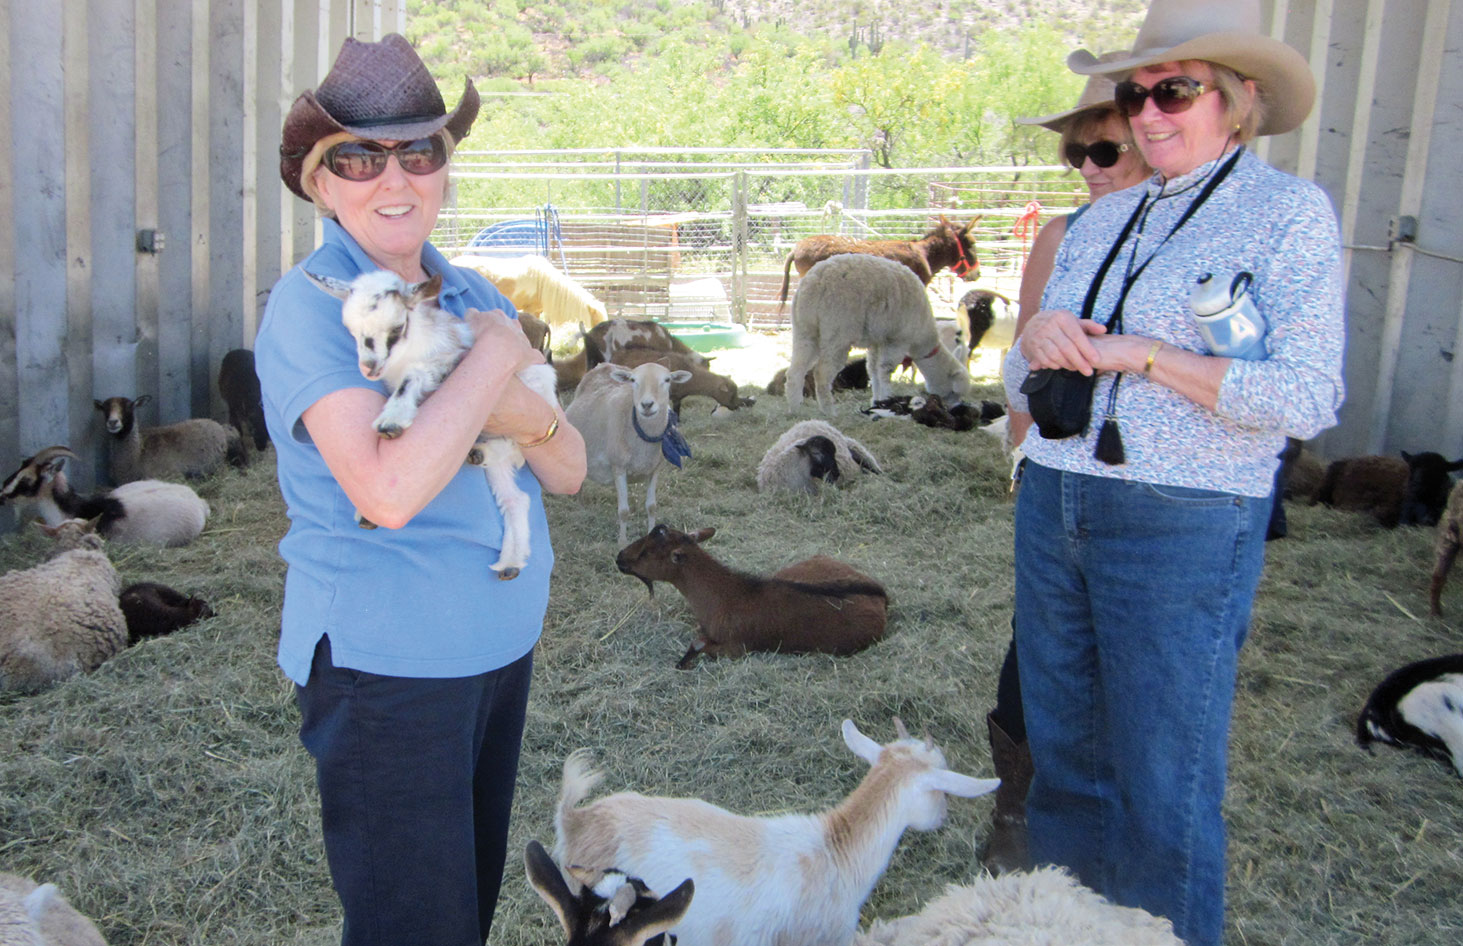 Rebecca Williams, at left, enjoying the petting zoo at Colossal Cave with Loretta Johnson and Lee Rinke